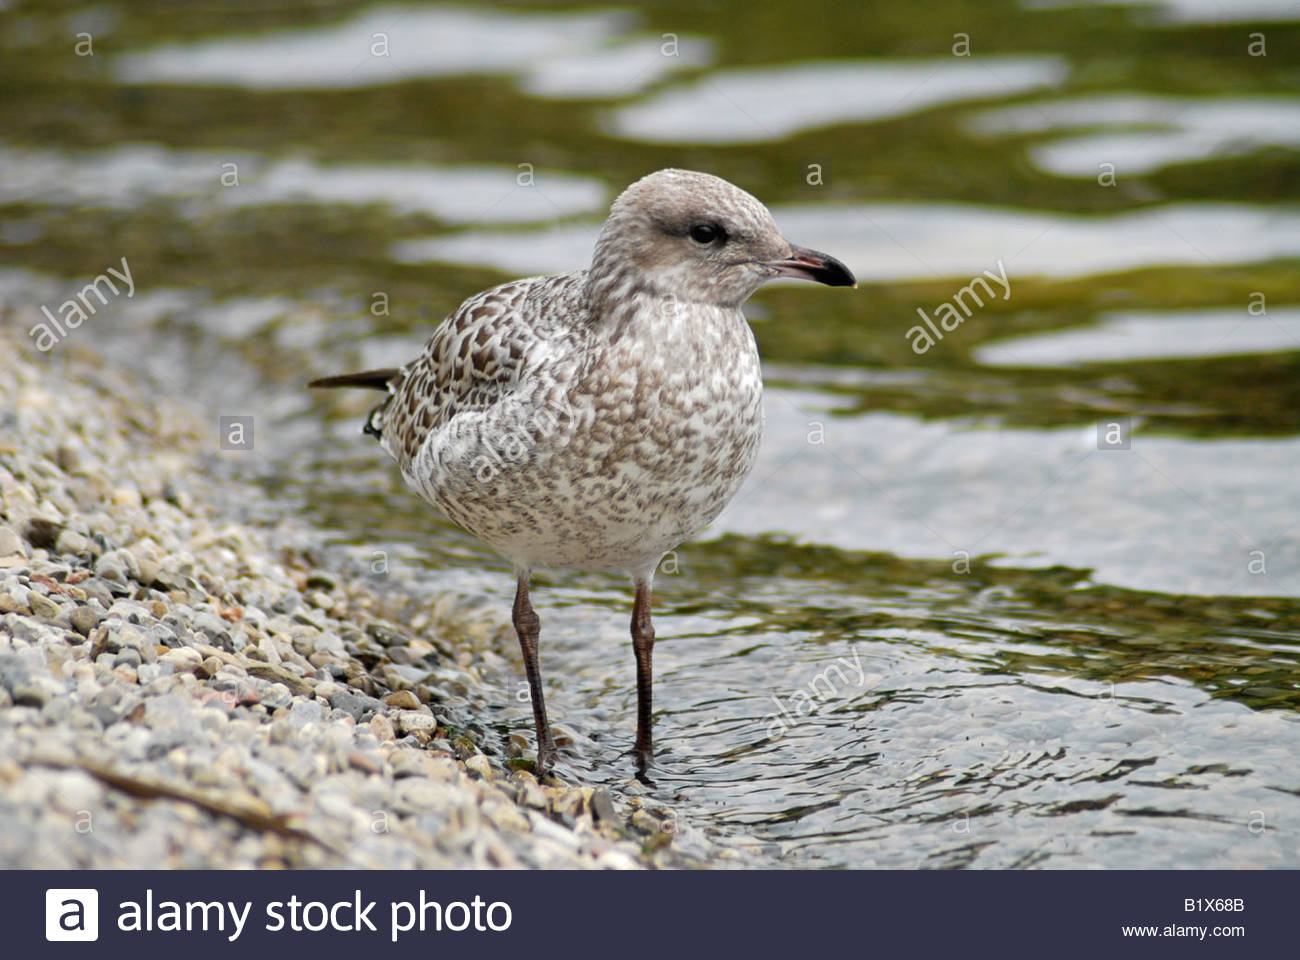 Young Herring Gull at the Lakeshore - Stock Image